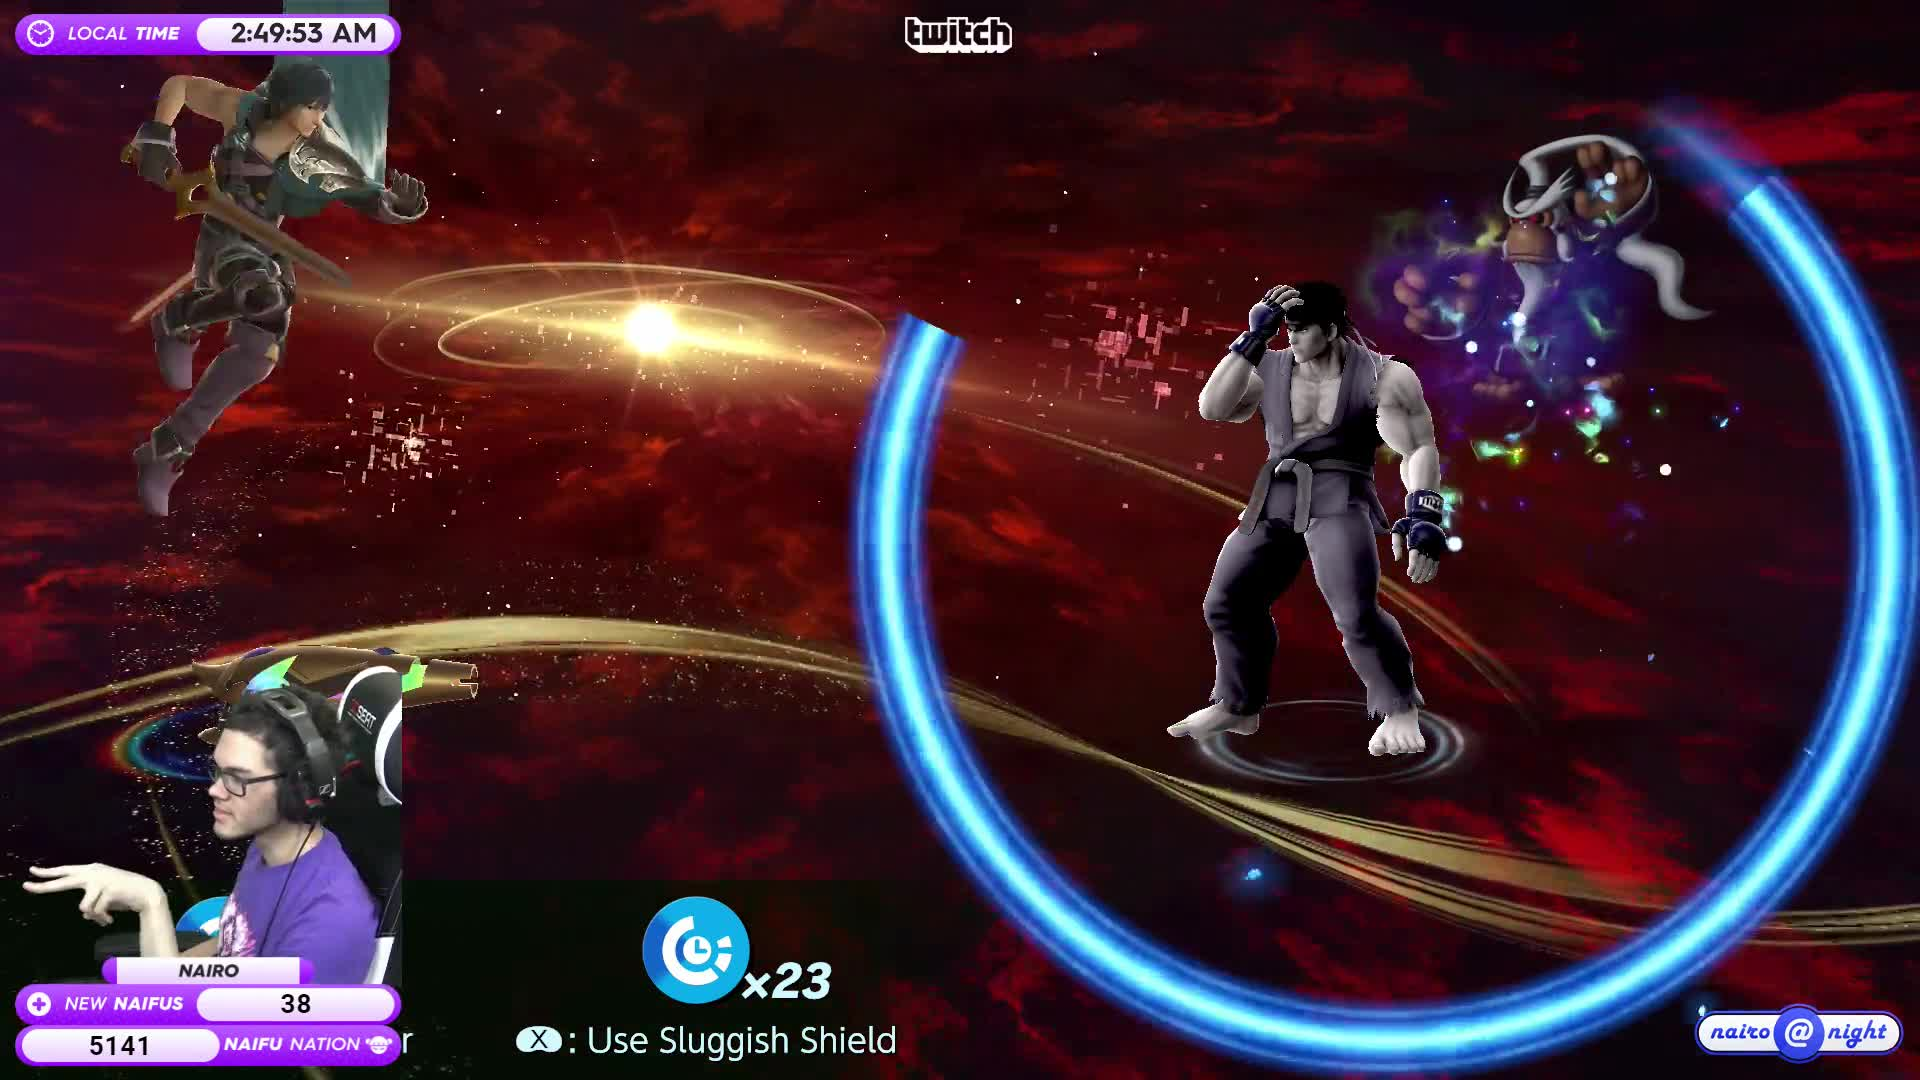 NairoMK - Nairo no look spirit board shot - Twitch